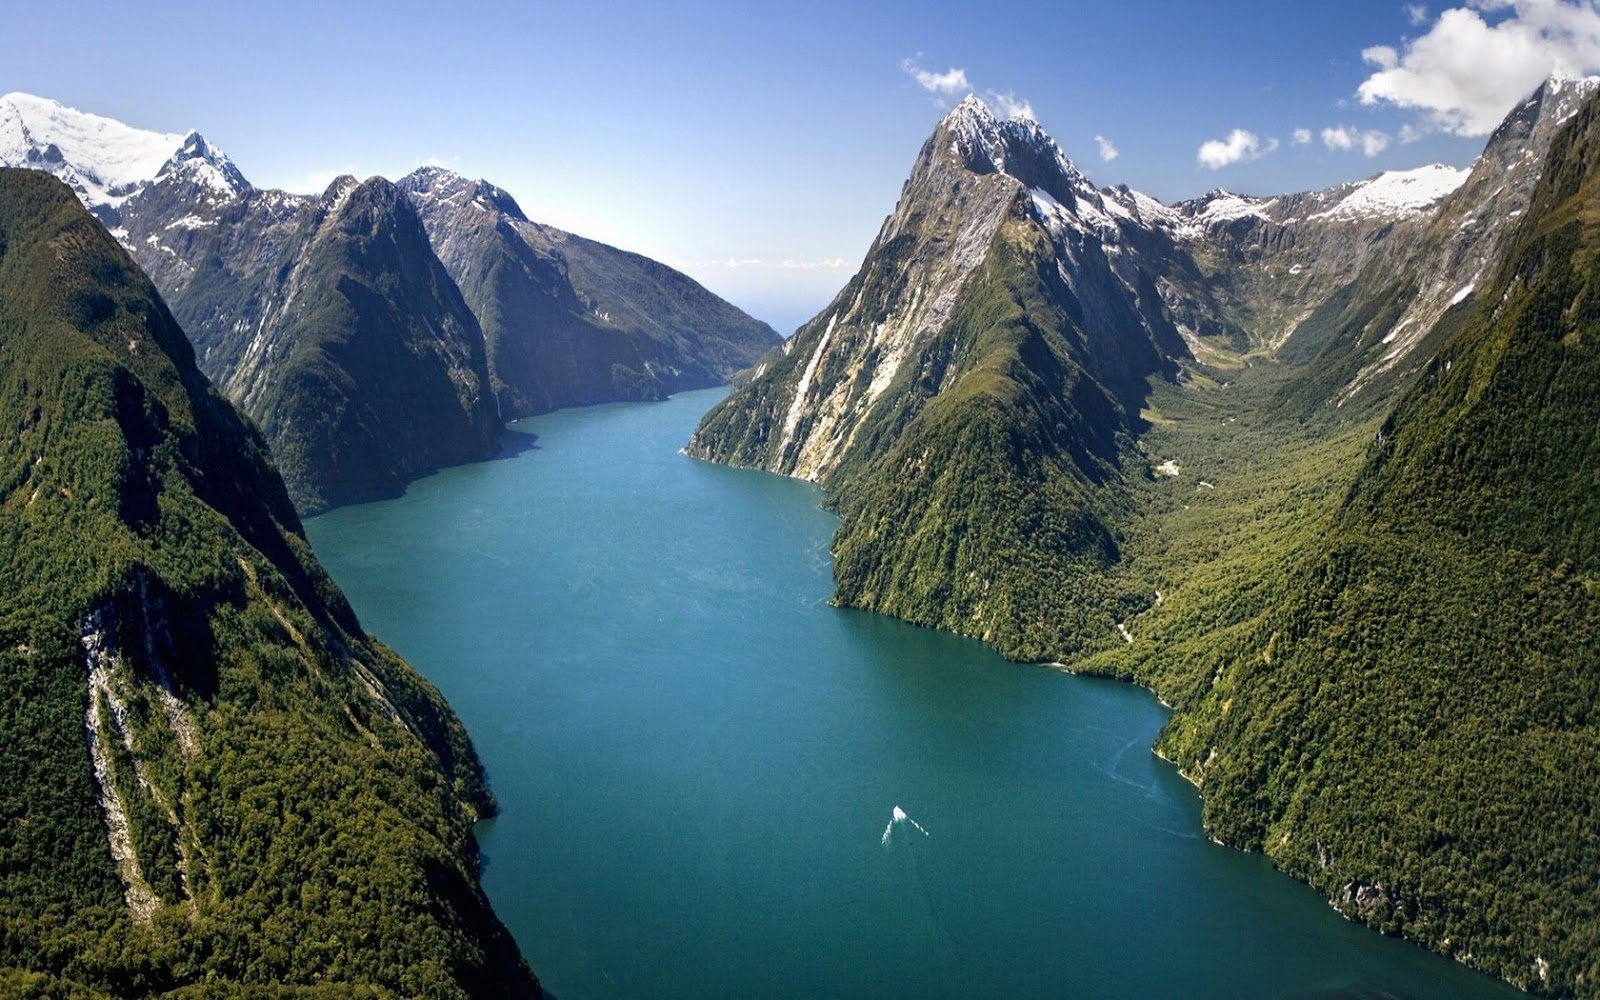 Stunning Photos Reveal Why New Zealand Should Be On Your